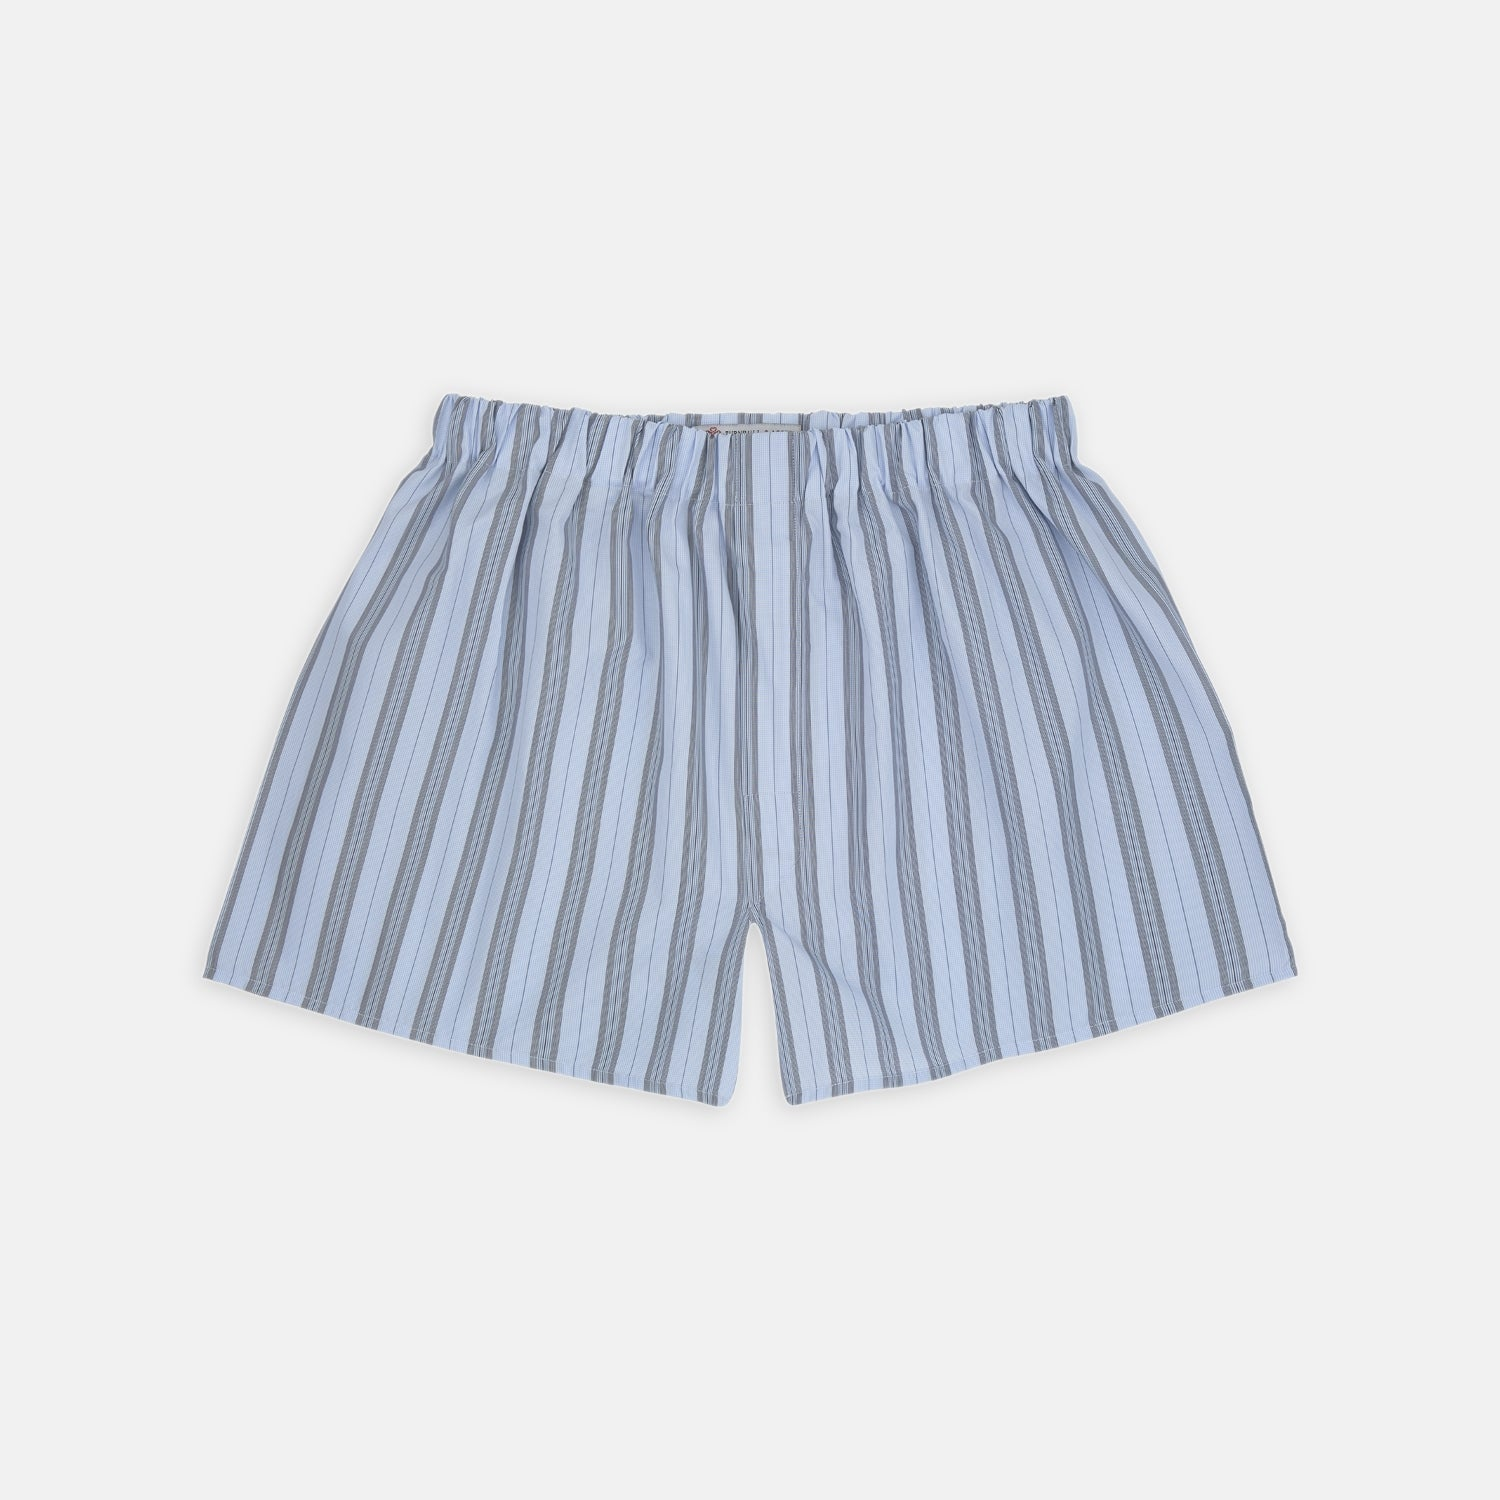 Grey, Turquoise and Sky Blue Mixed Stripe Cotton Boxer Shorts